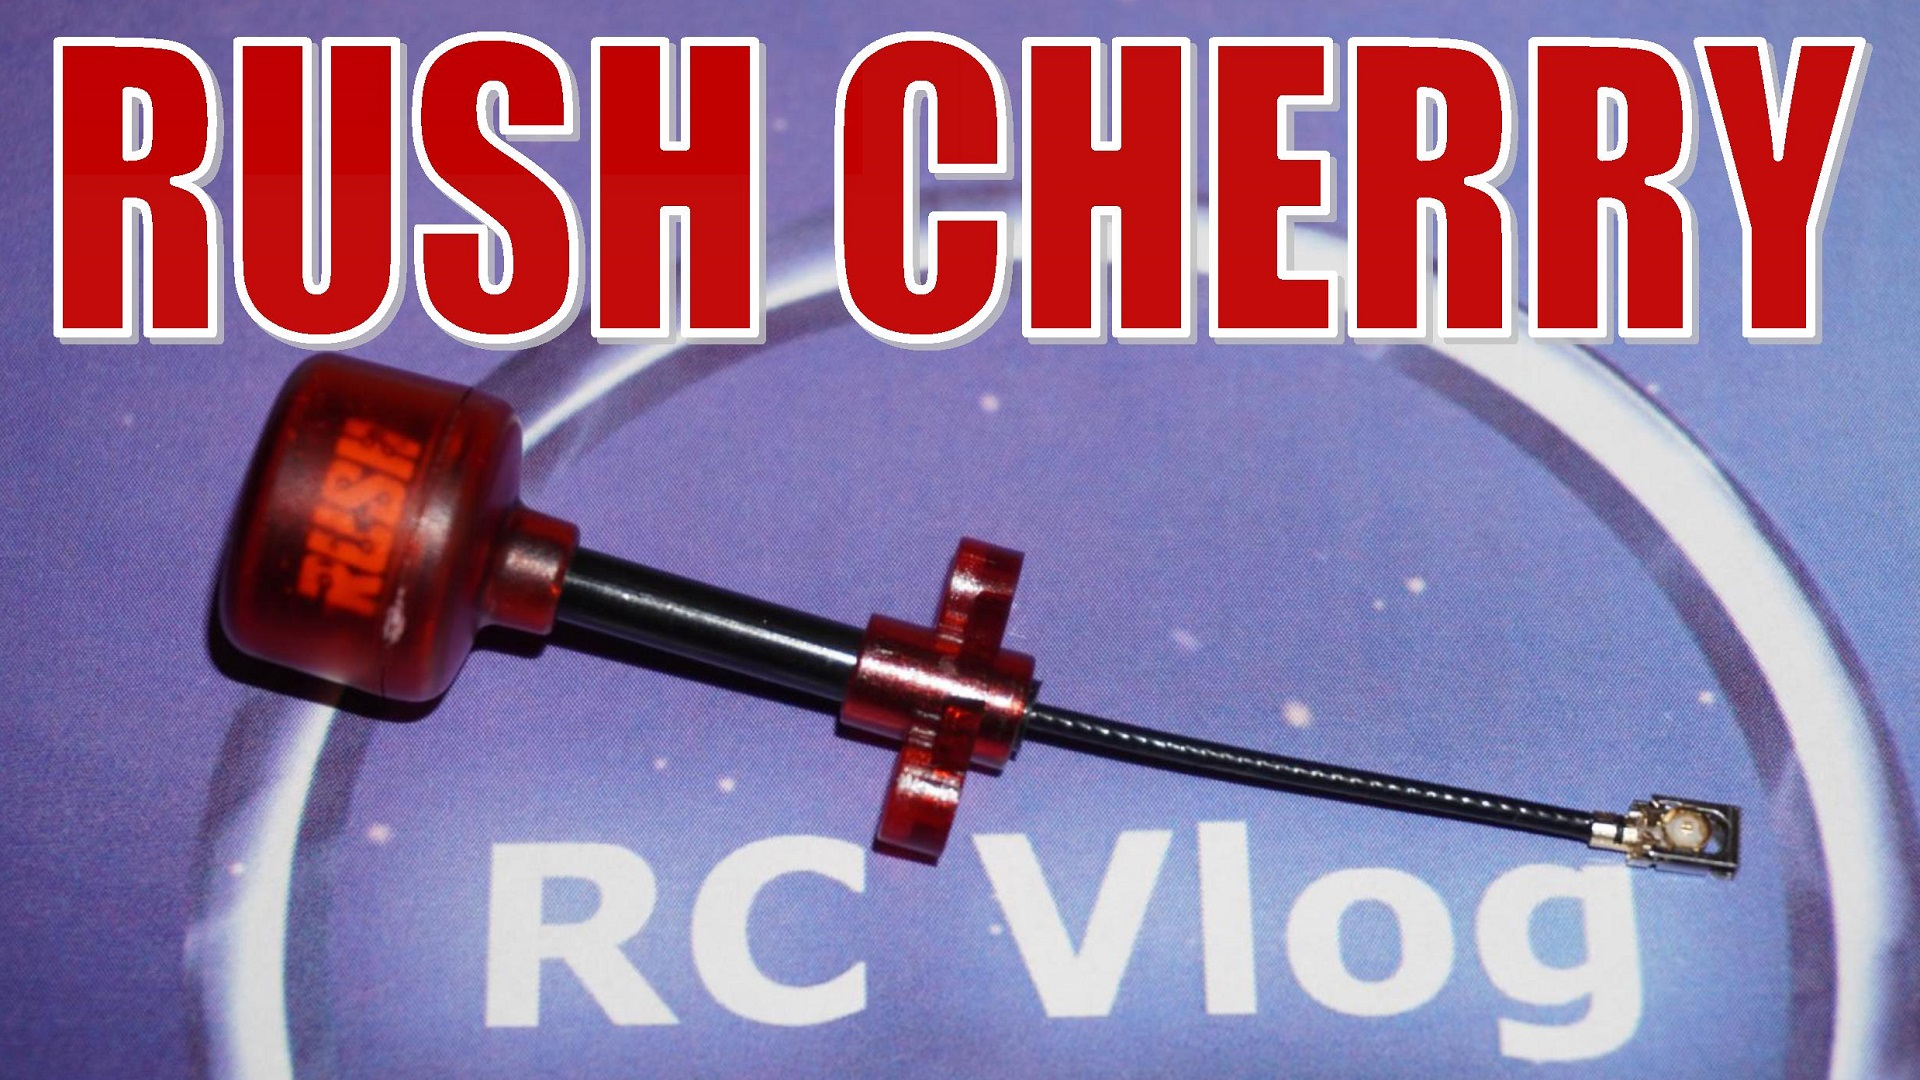 Rush Cherry Antenna IPEX U.FL IPX 1.2dBi 5.8Ghz RHCP/LHCP for FPV Racing Drone RC Airplane